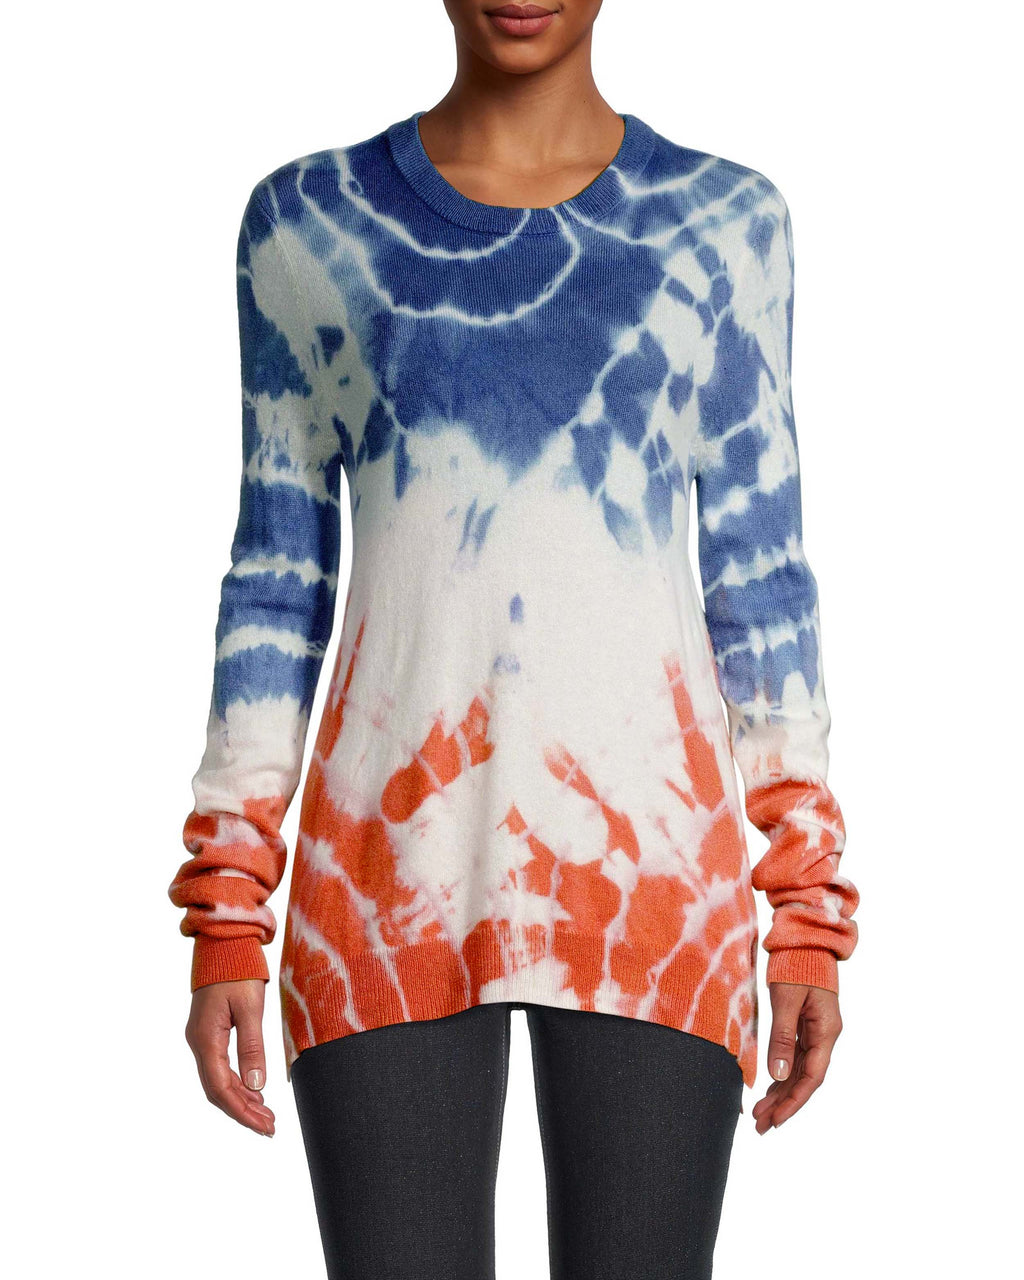 CT18686 - TIE DYE CREW NECK SWEATER - tops - knitwear - Crafted from luxe cashmere, this crew neck sweater features contrasting tie dye. This slightly oversized piece is perfect for layering over t-shirts or simply wearing solo. Add 1 line break Stylist Tip: Pair with denim and gold jewelry.